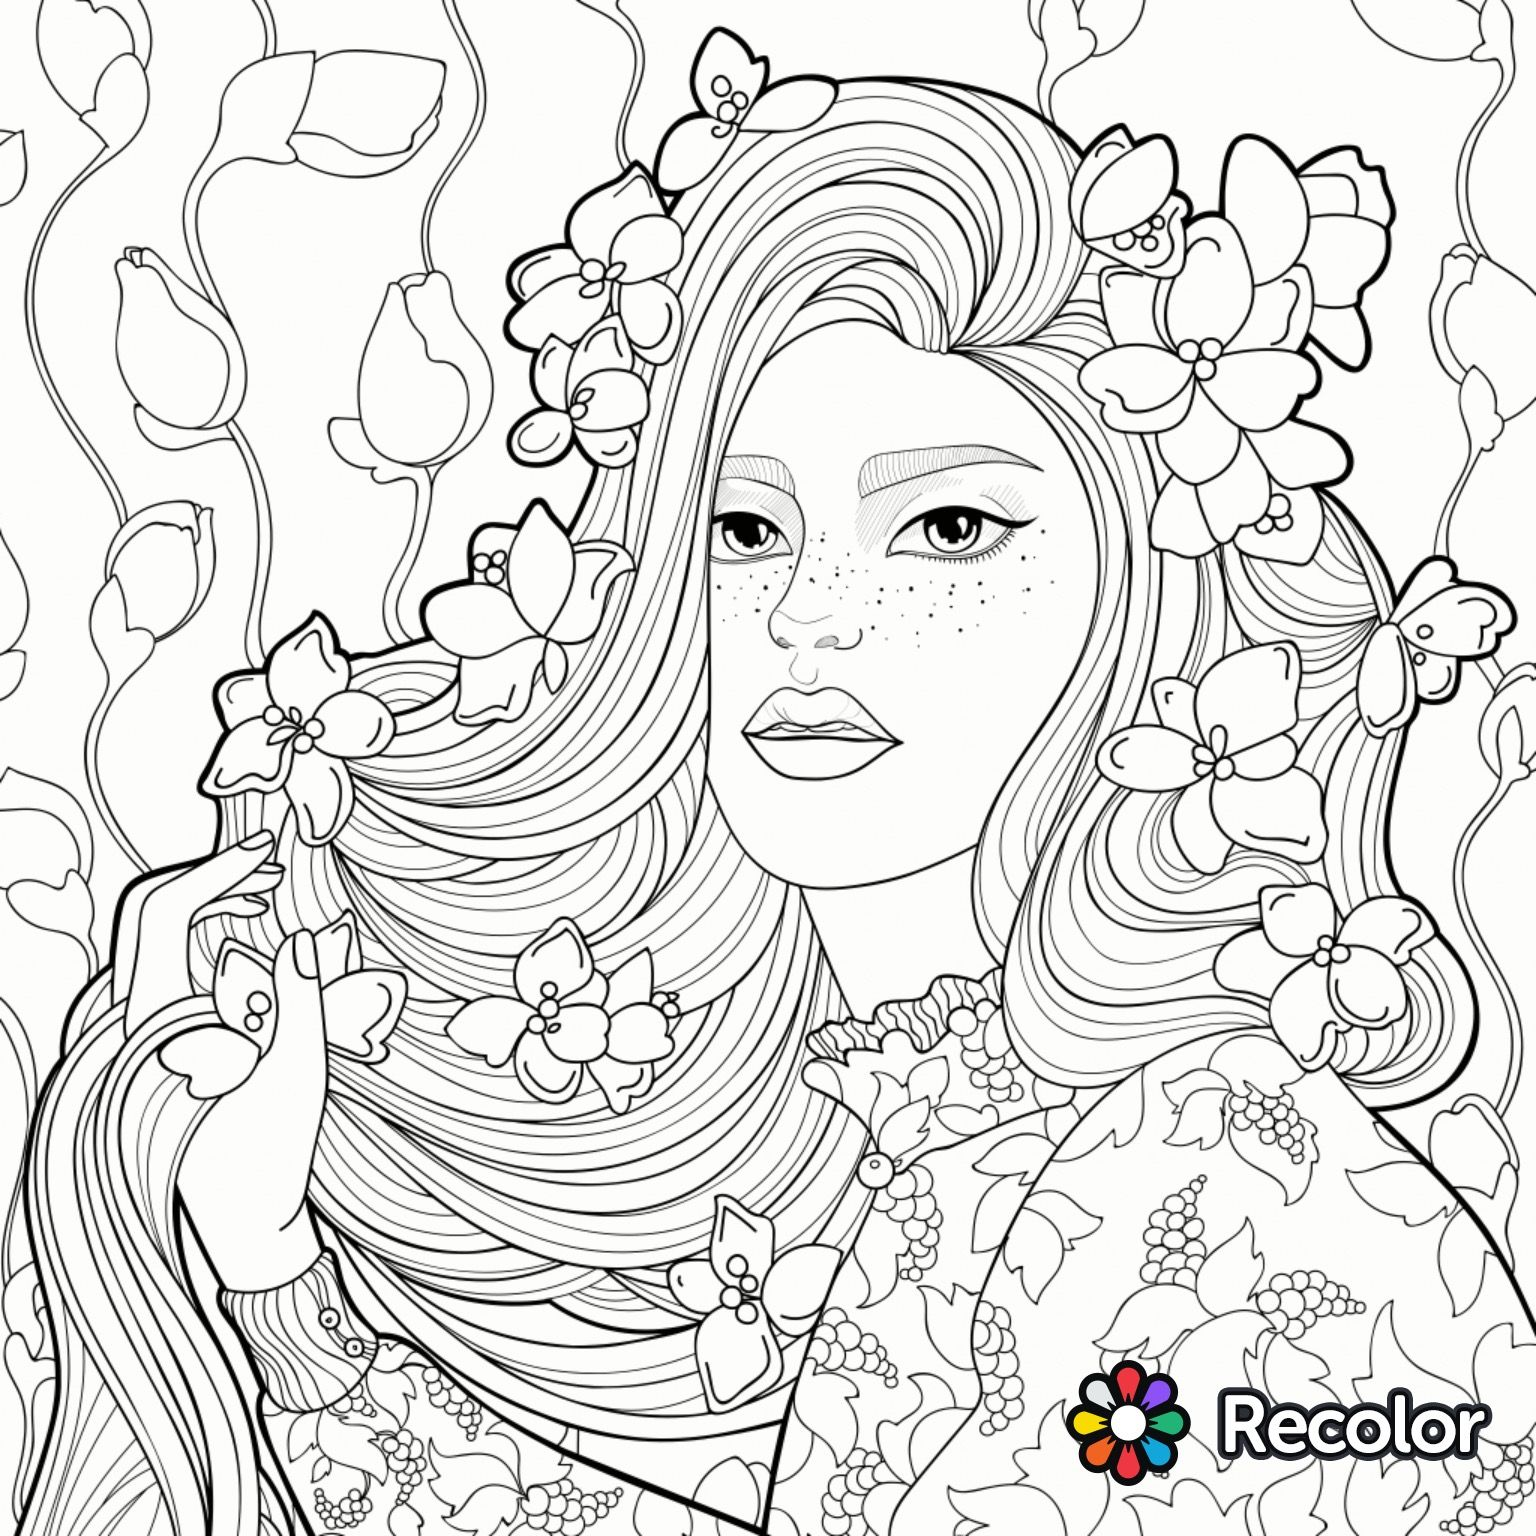 Girl With Flowers In Her Hair Coloring Page Cute Coloring Pages Coloring Pages Coloring Pages For Girls